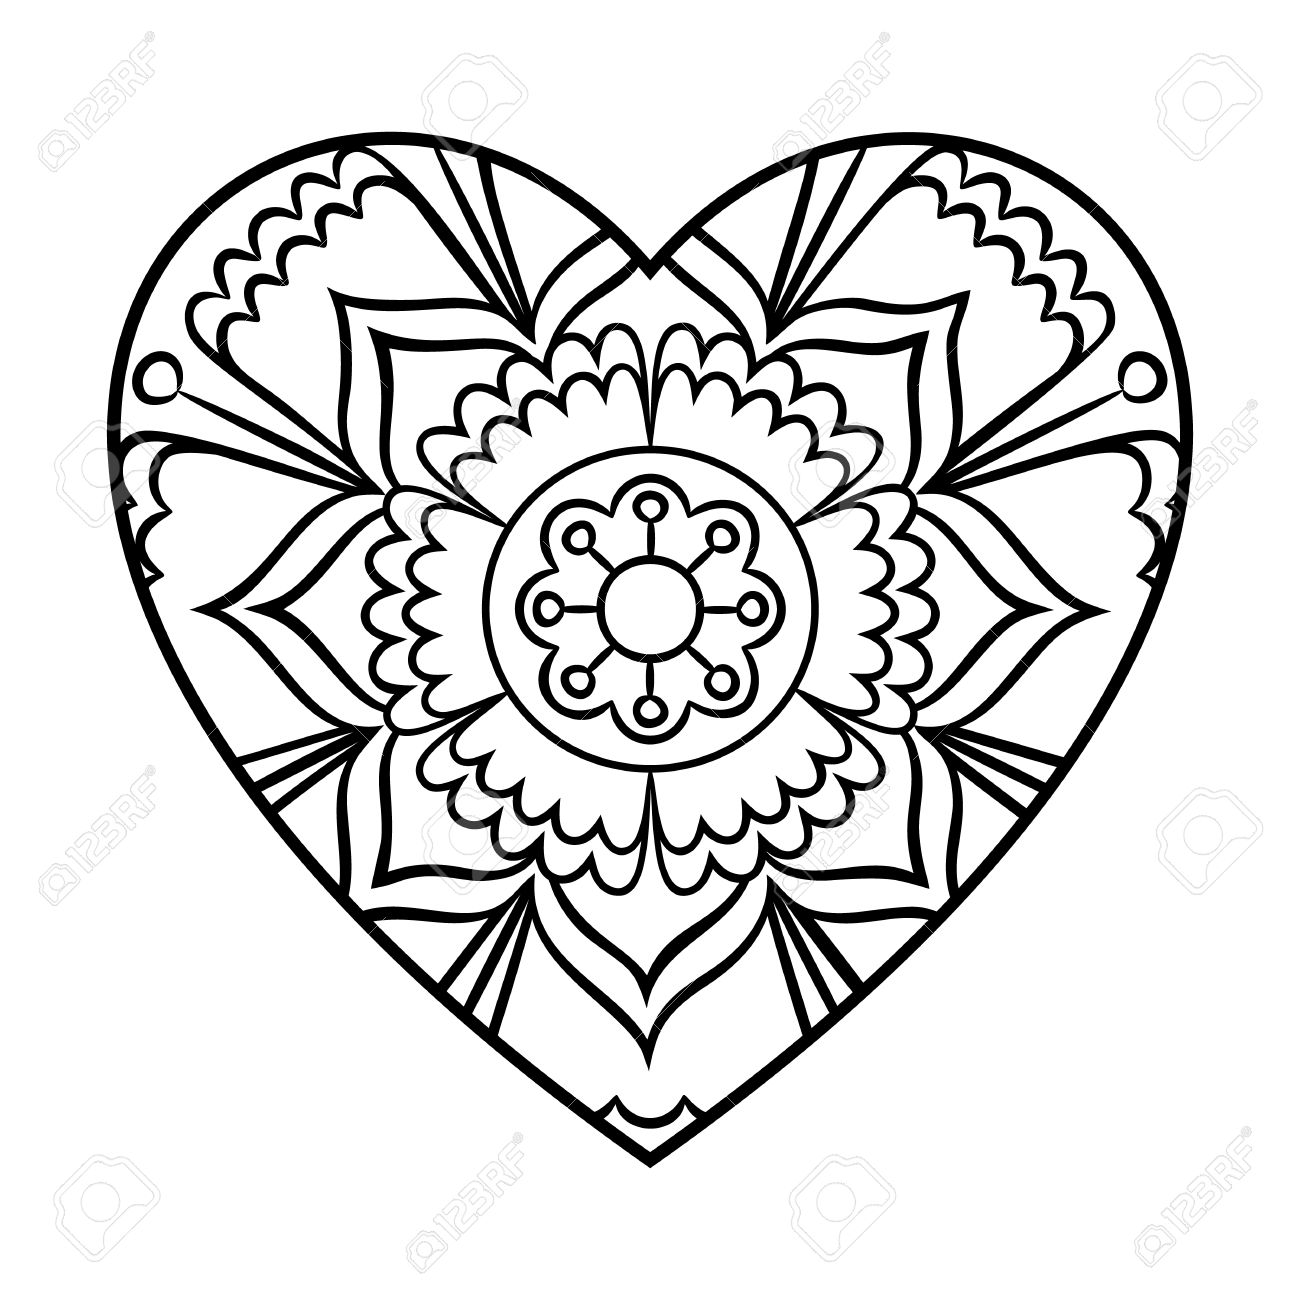 Stunning Heart Shape Coloring Pages Pictures - Triamterene.us ...